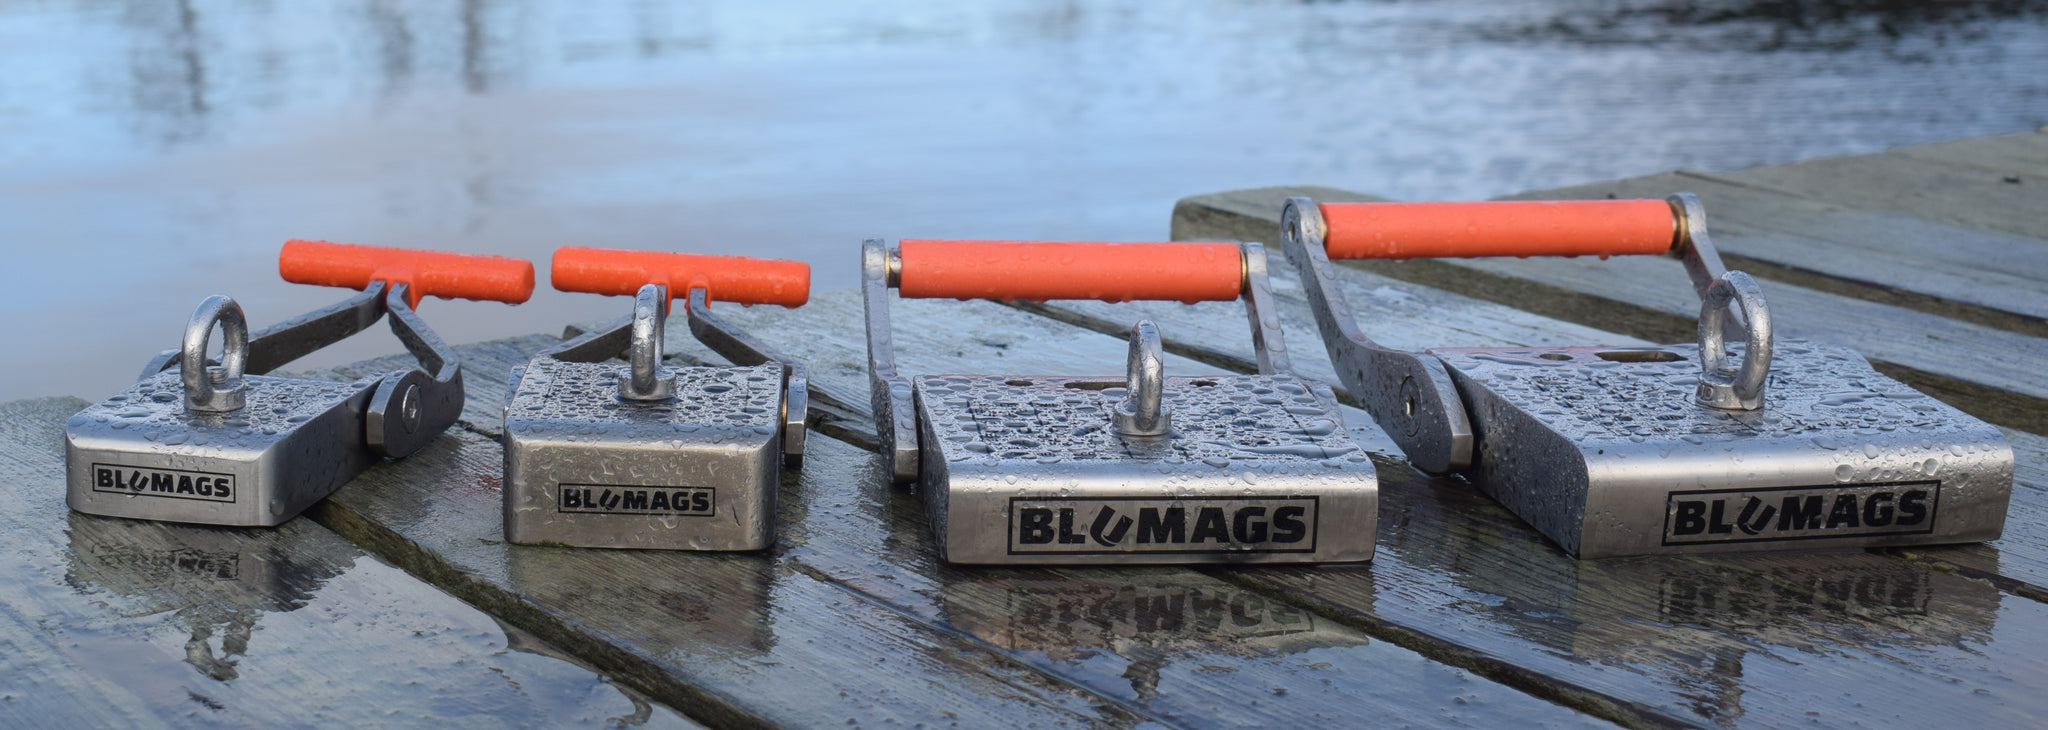 Subsea Magnets by Blumags